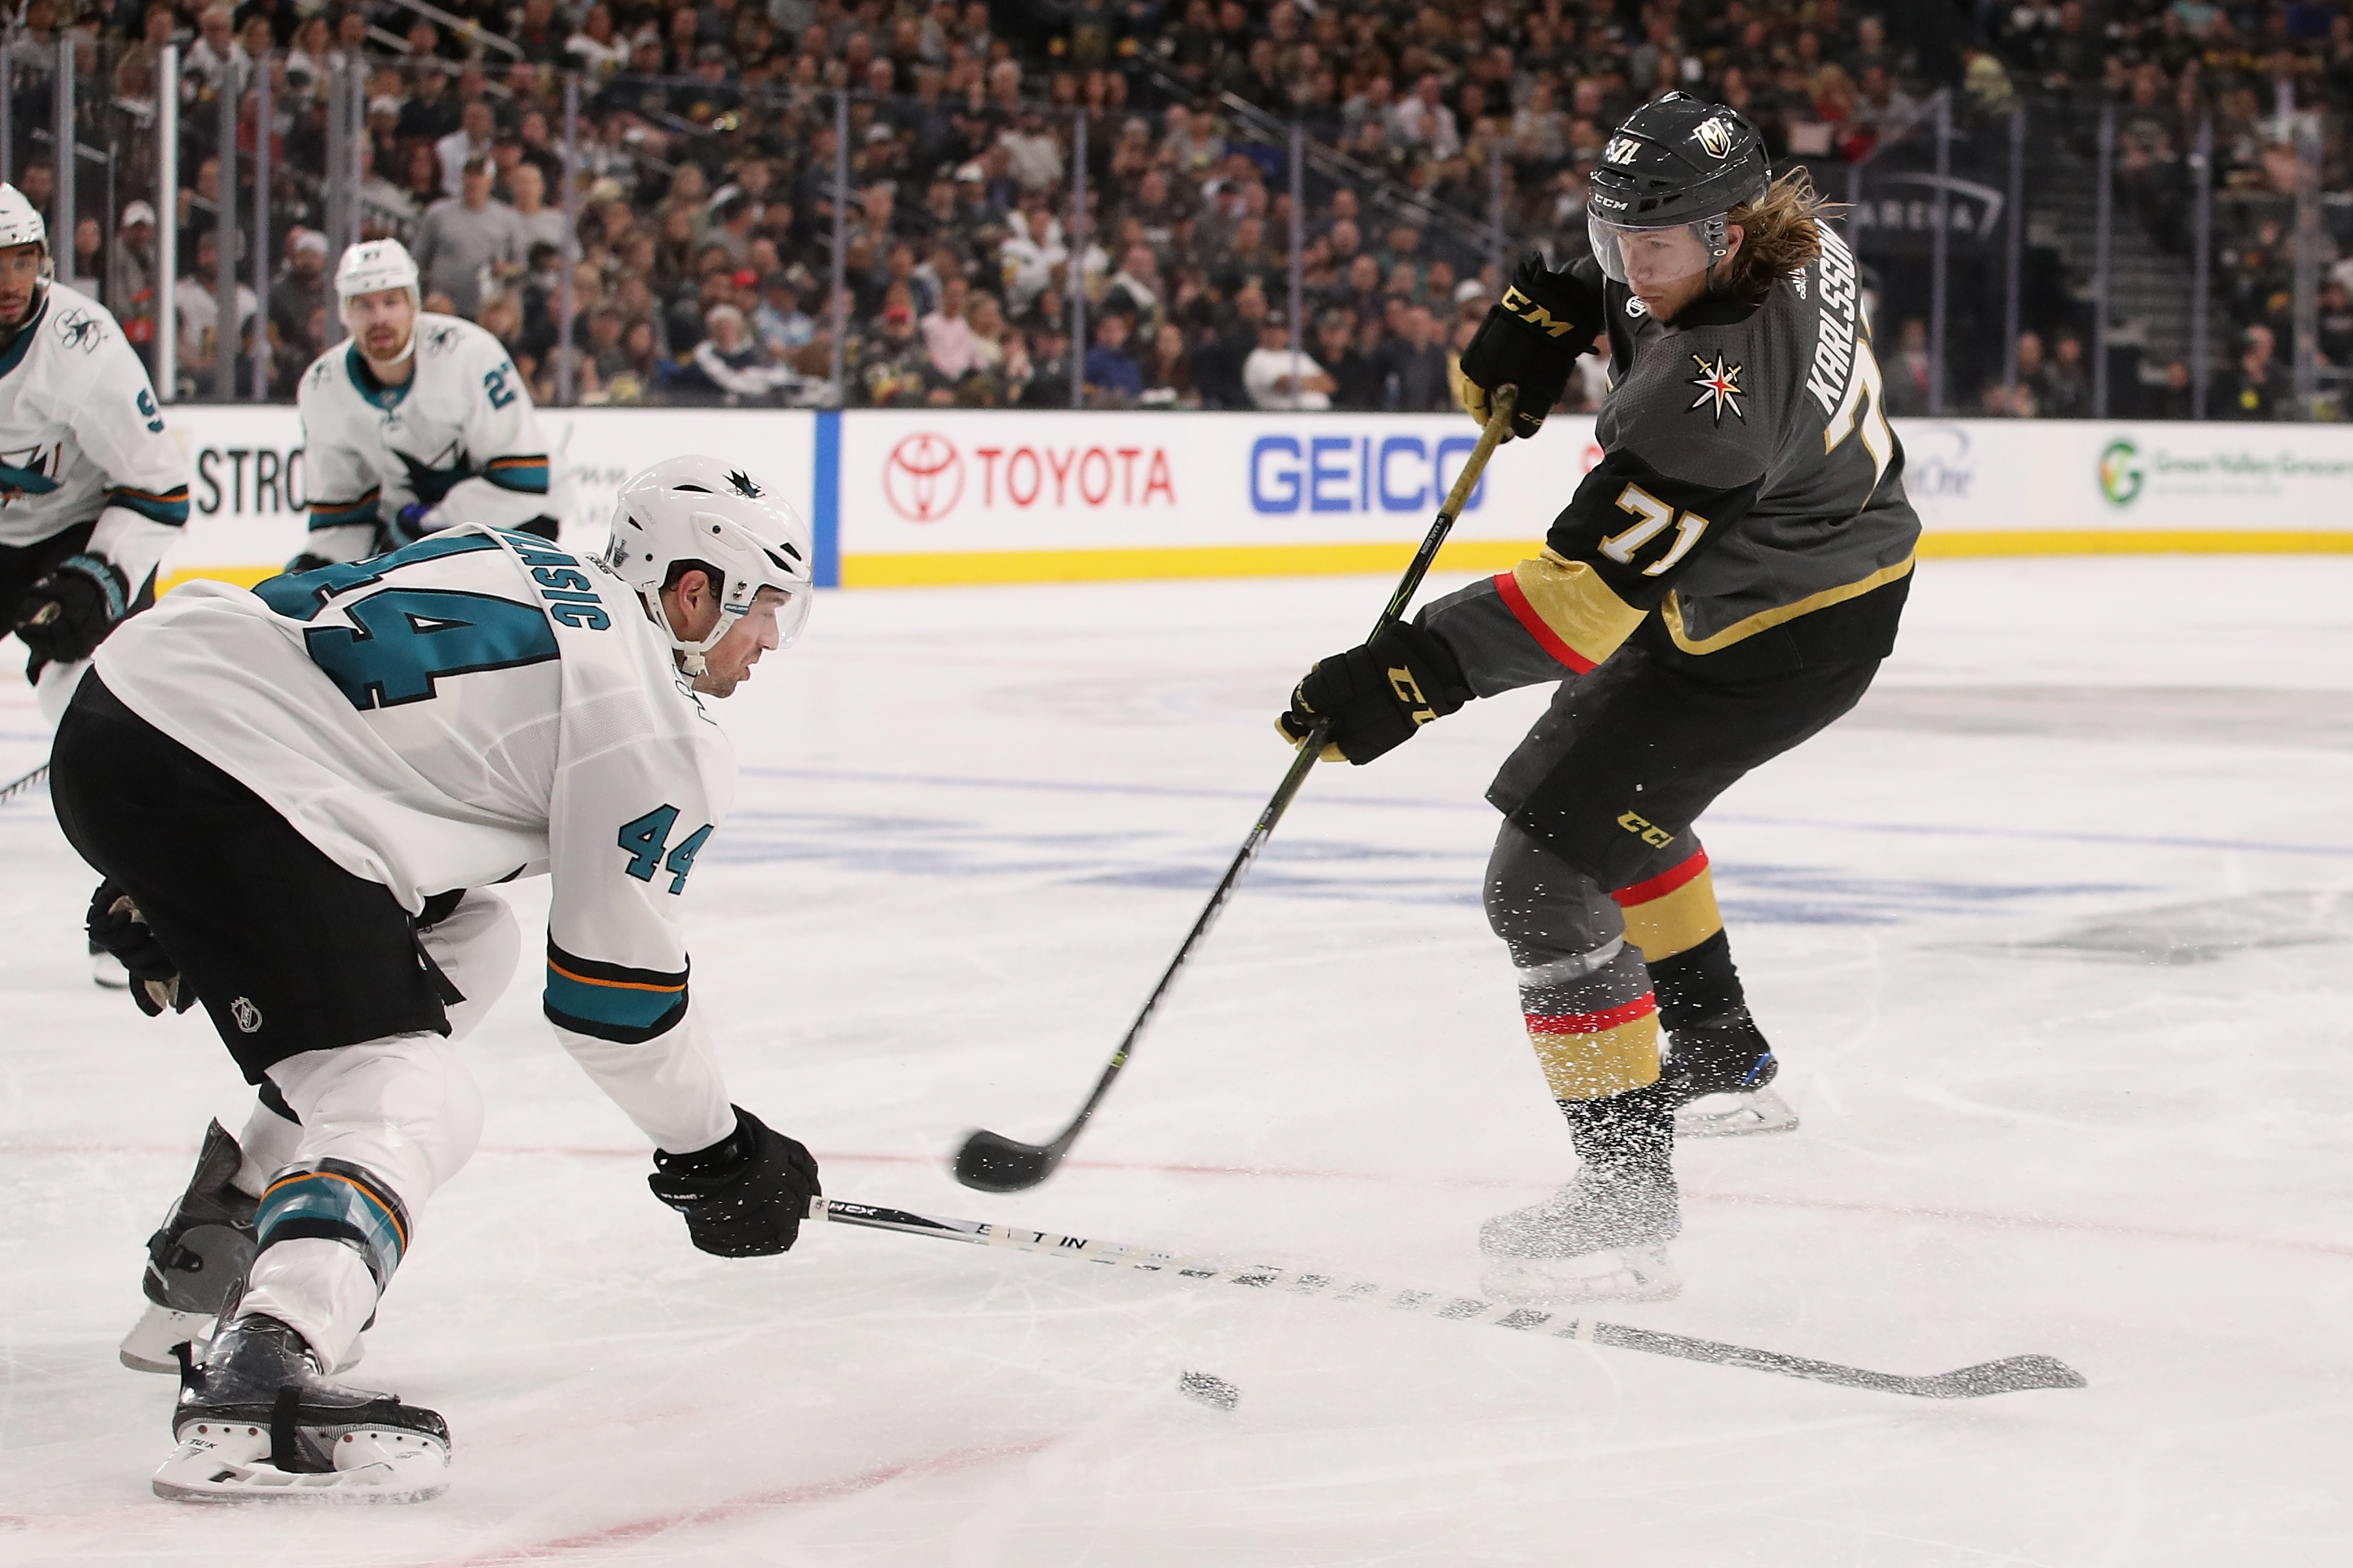 LAS VEGAS, NV - APRIL 26: William Karlsson #71 of the Vegas Golden Knights shoots the puck past Marc-Edouard Vlasic #44 of the San Jose Sharks in Game One of the Western Conference Second Round during the 2018 NHL Stanley Cup Playoffs at T-Mobile Arena on